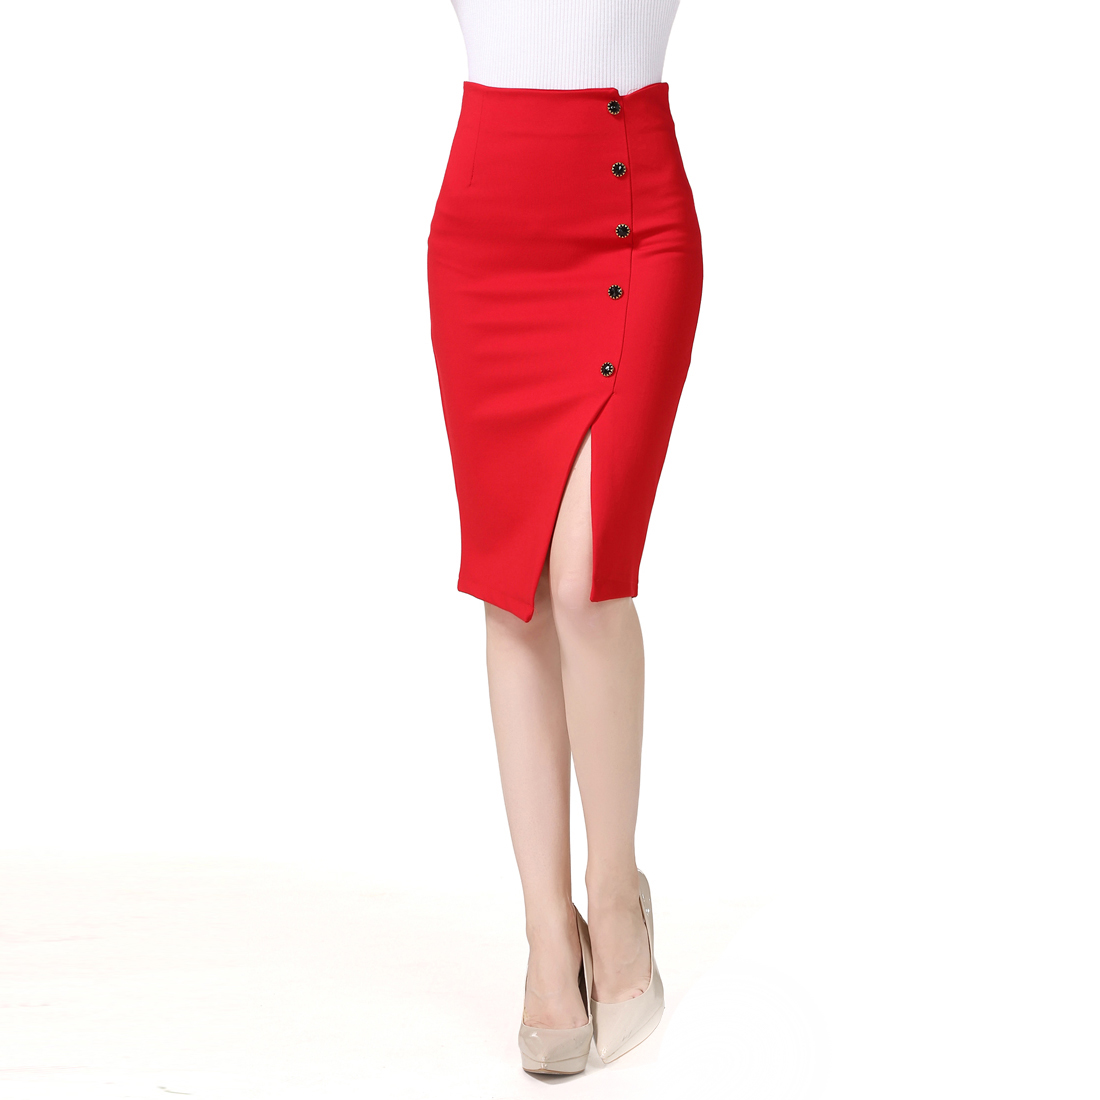 New Women/'s High Waisted Plain Midi Pencil Bodycon zipper Work Office Skirt